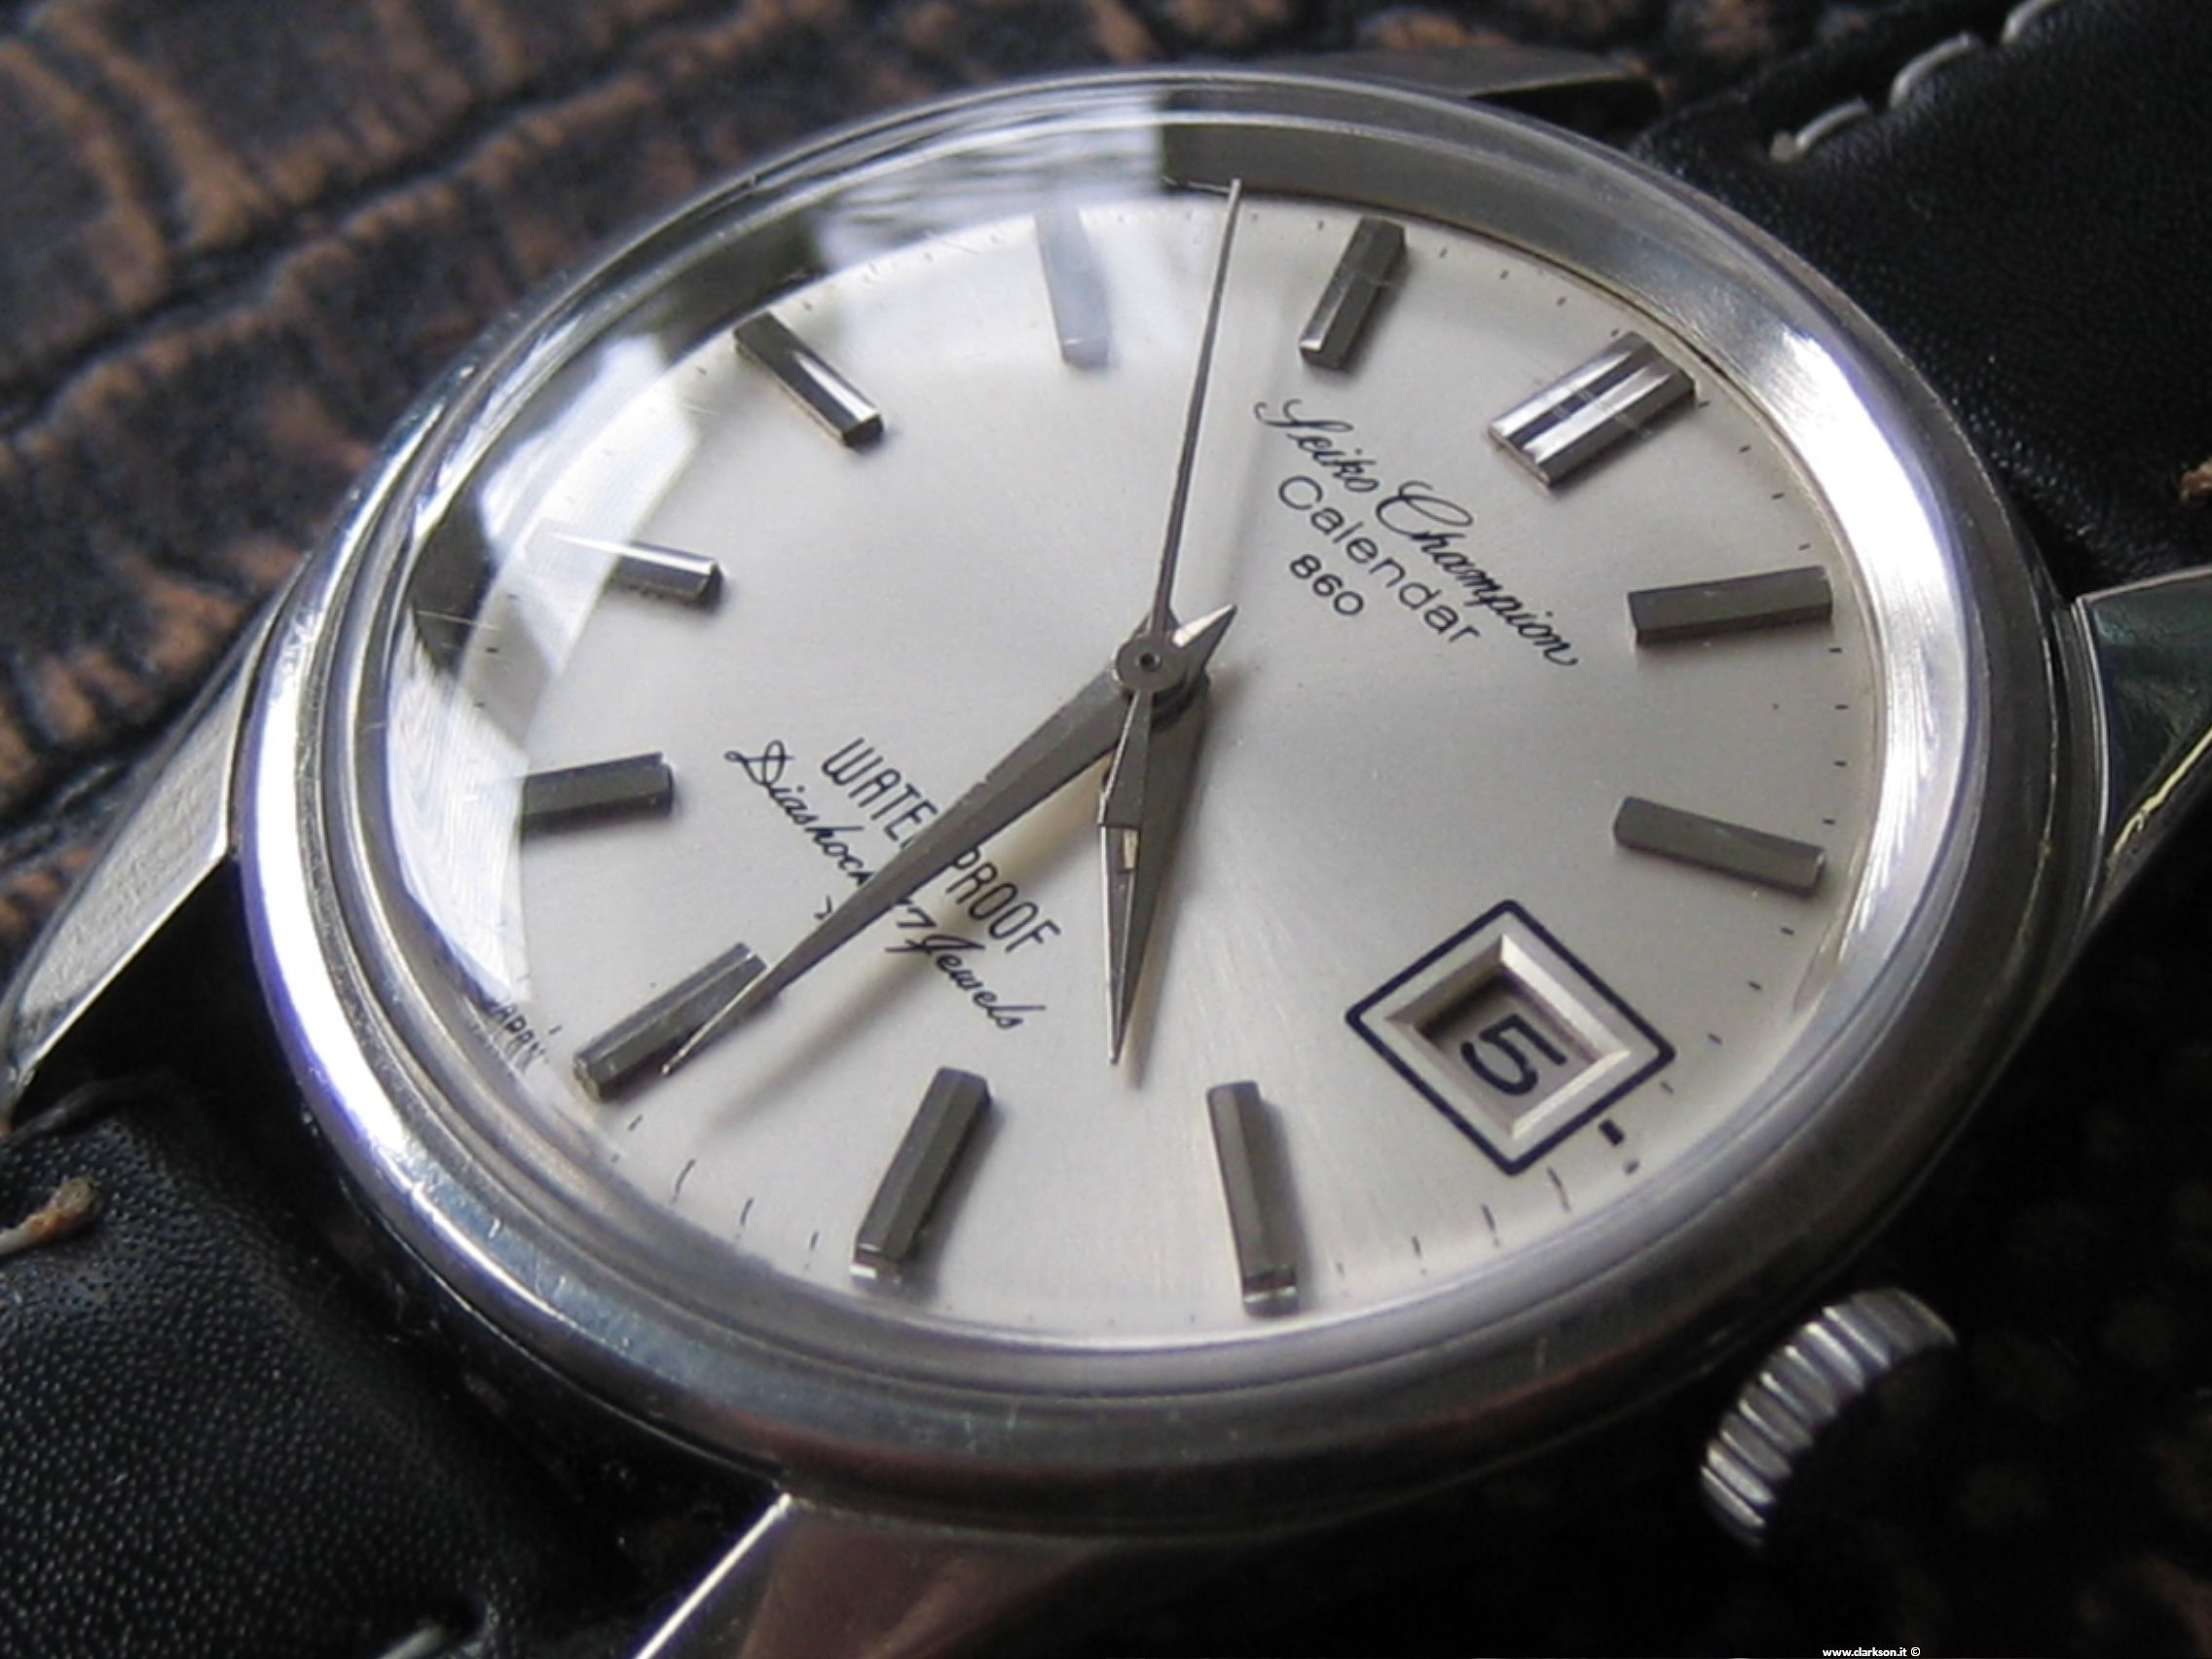 seiko diashock file jewels watches wiki wikimedia jpg champion commons